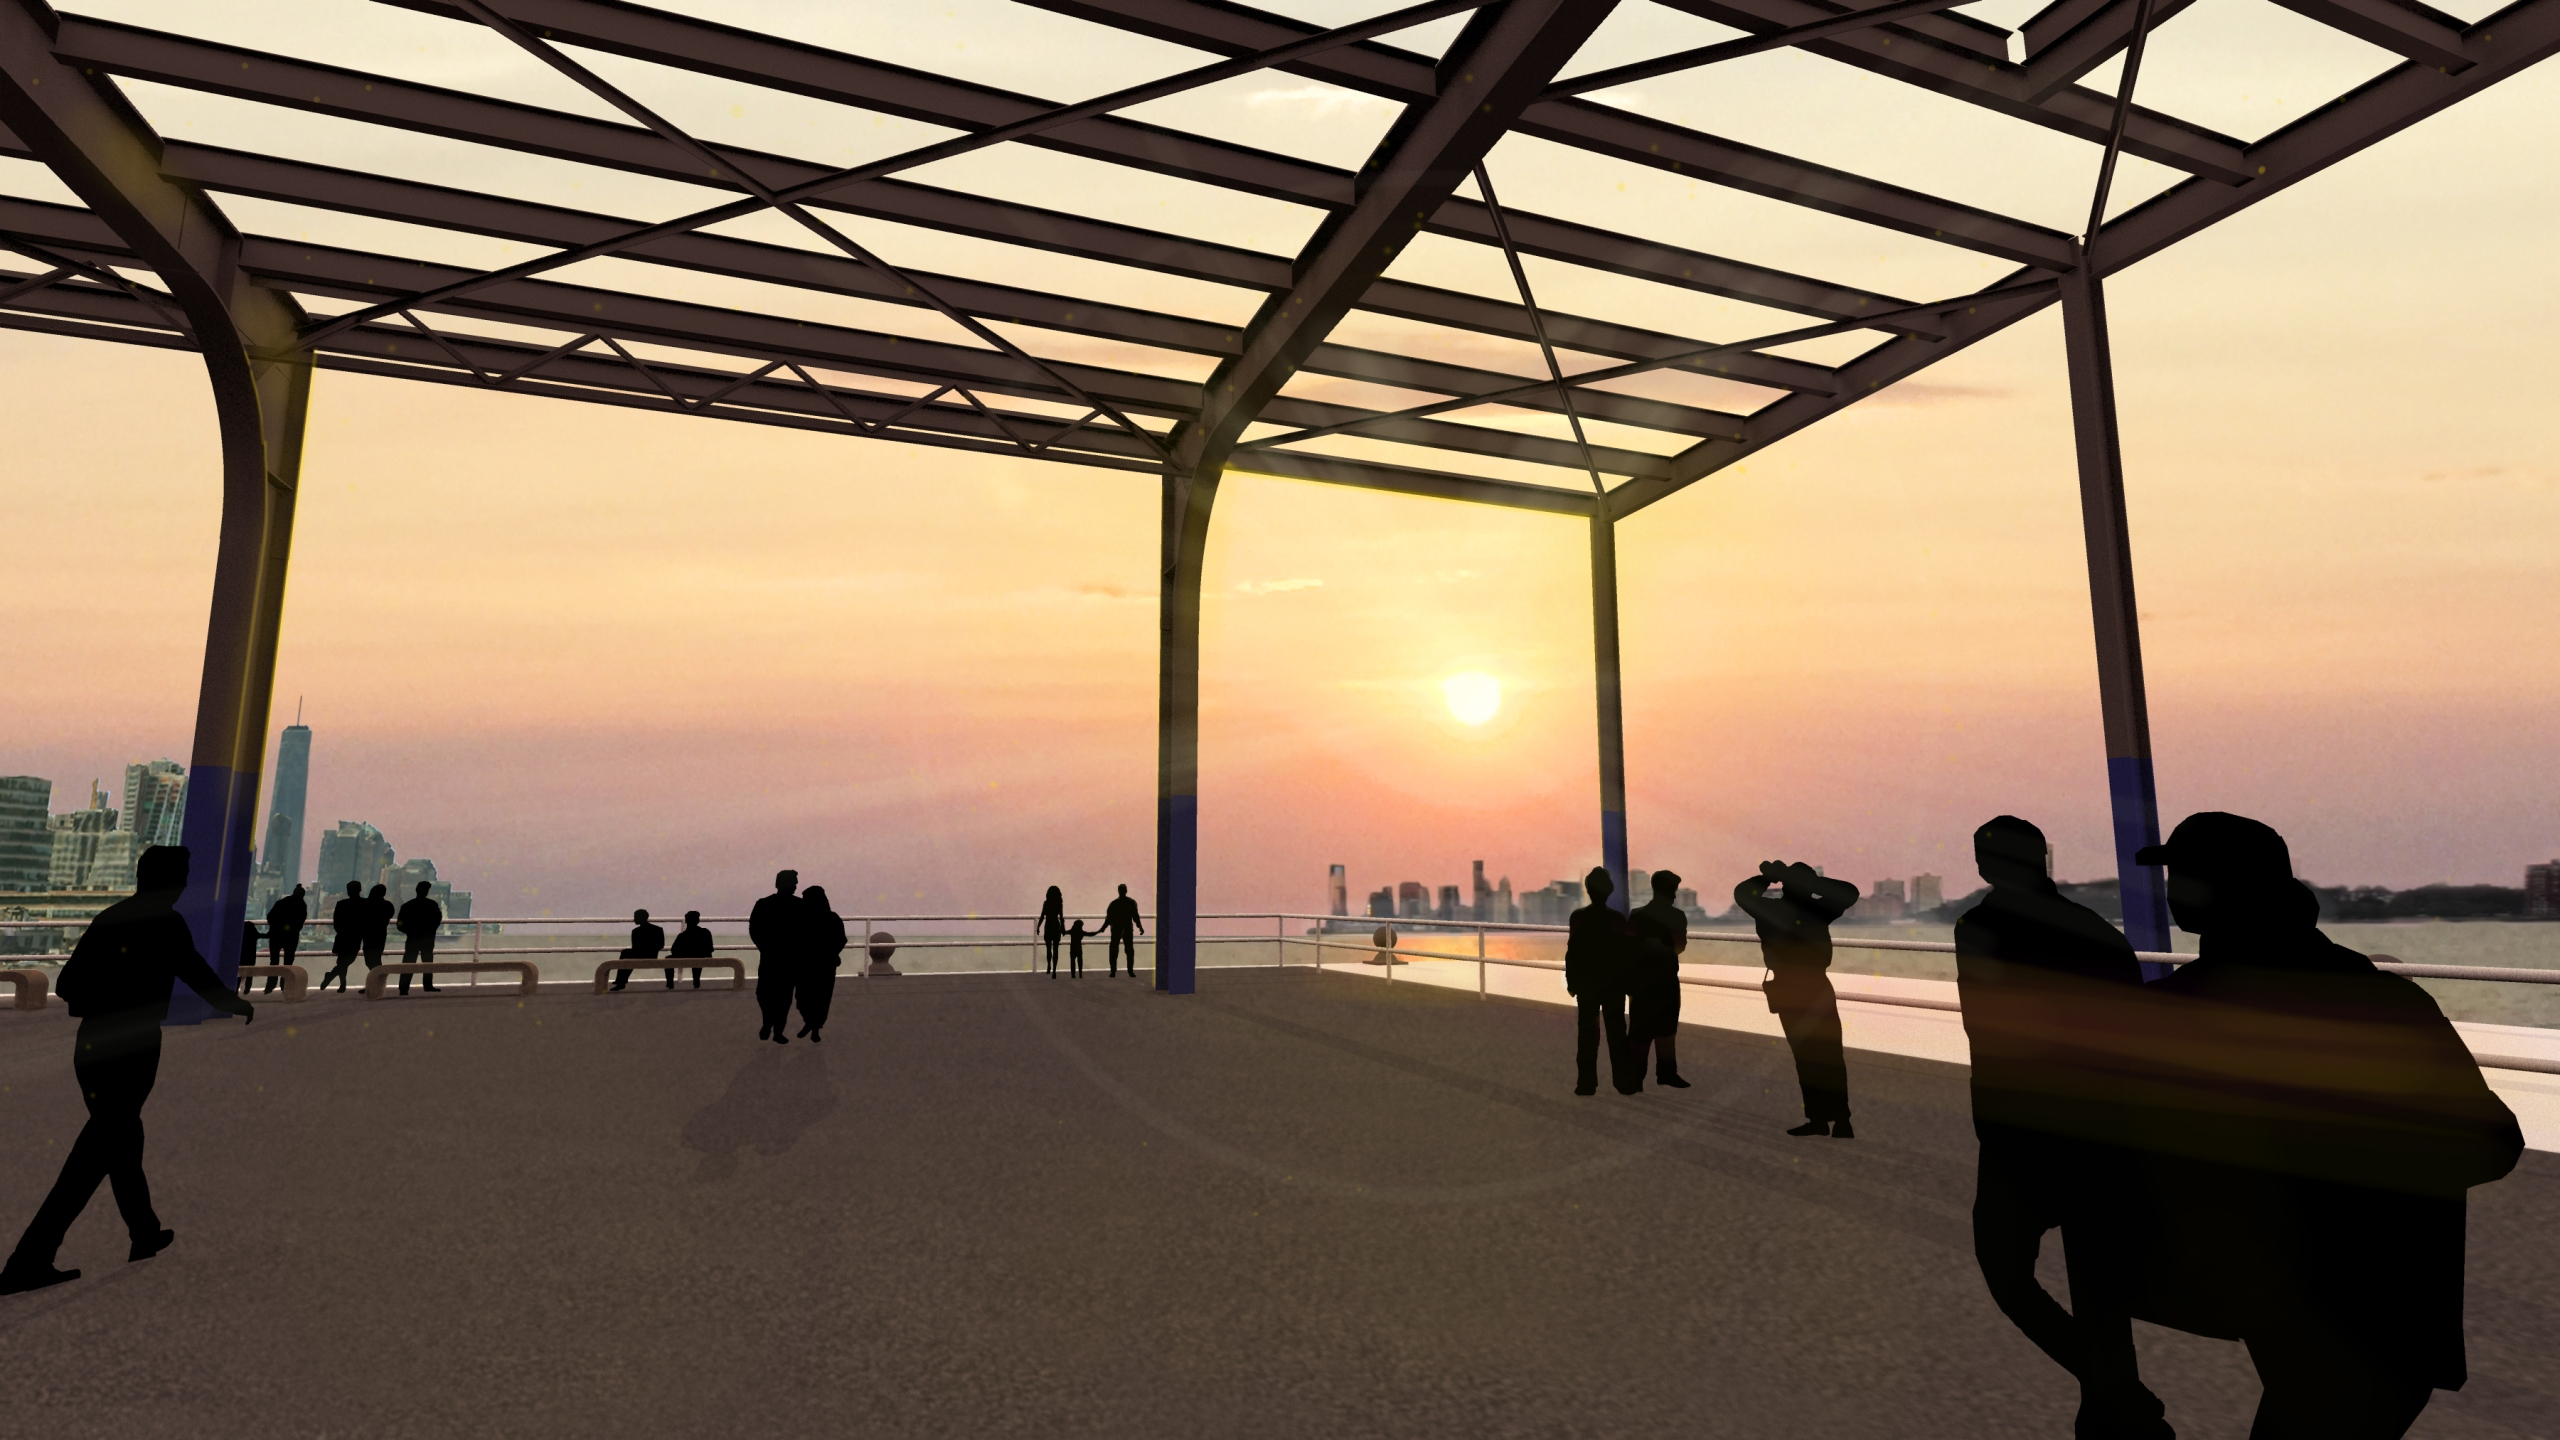 Rendering showing people admiring a sunset inside a park planned for Pier 76 on Manhattan's West Side